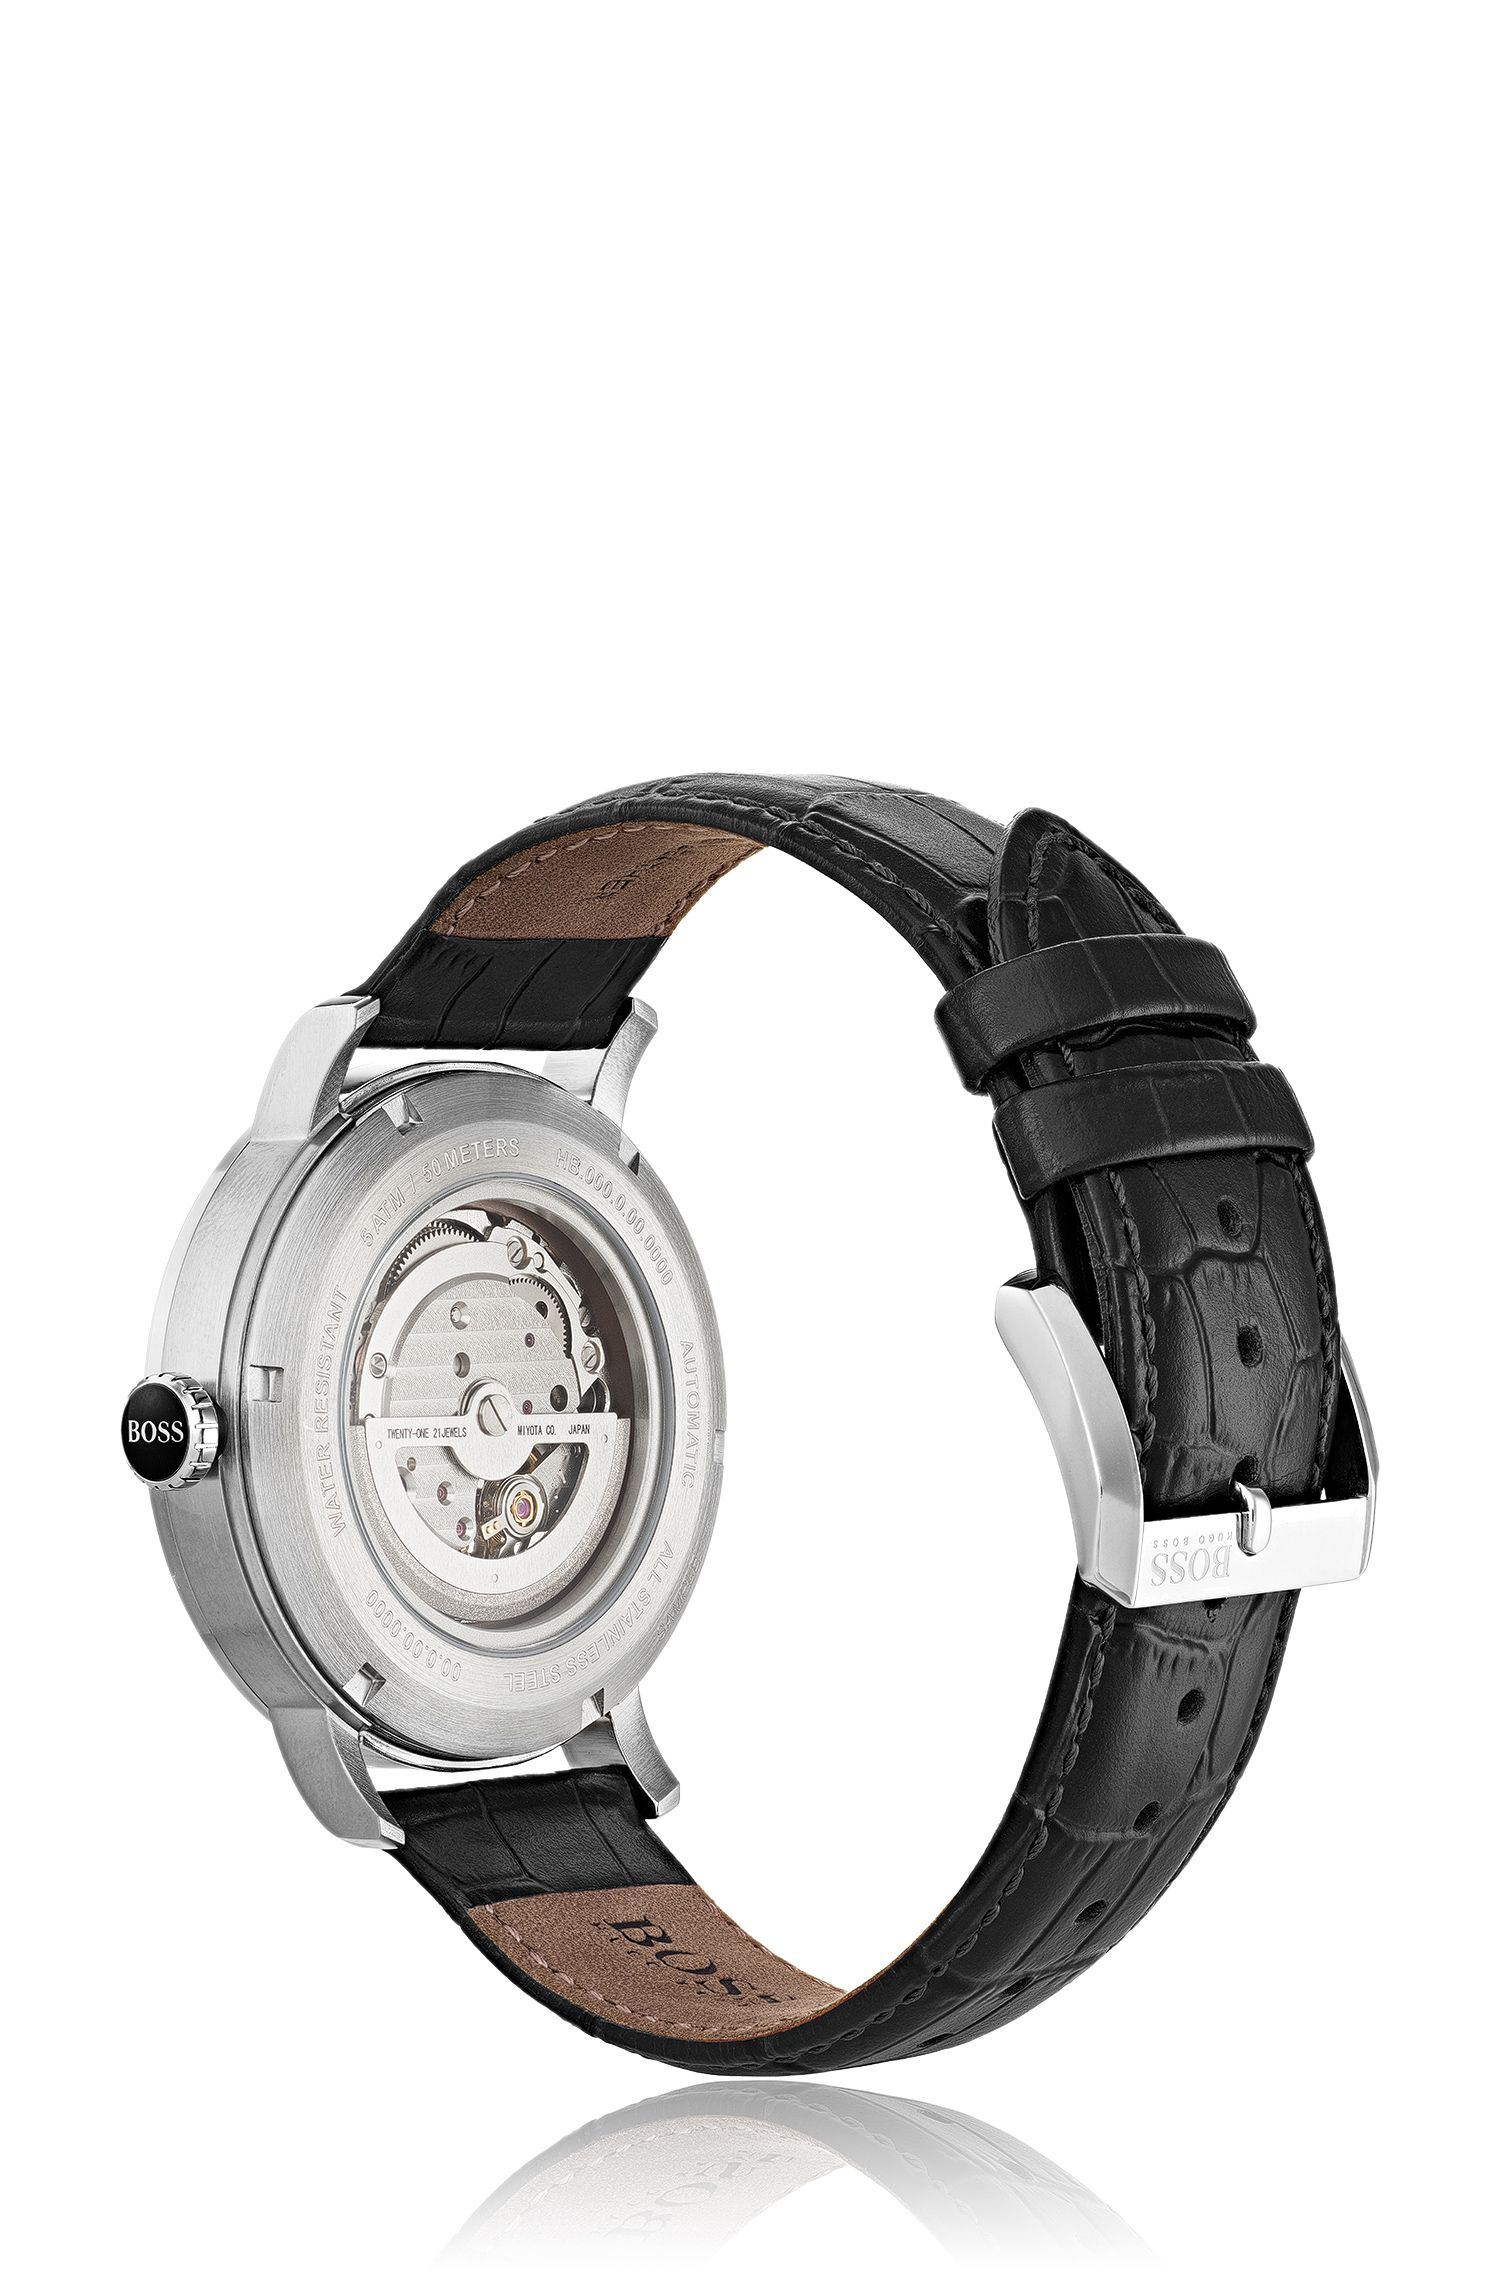 Multi-dial watch with visible mechanics and embossed strap, Assorted-Pre-Pack